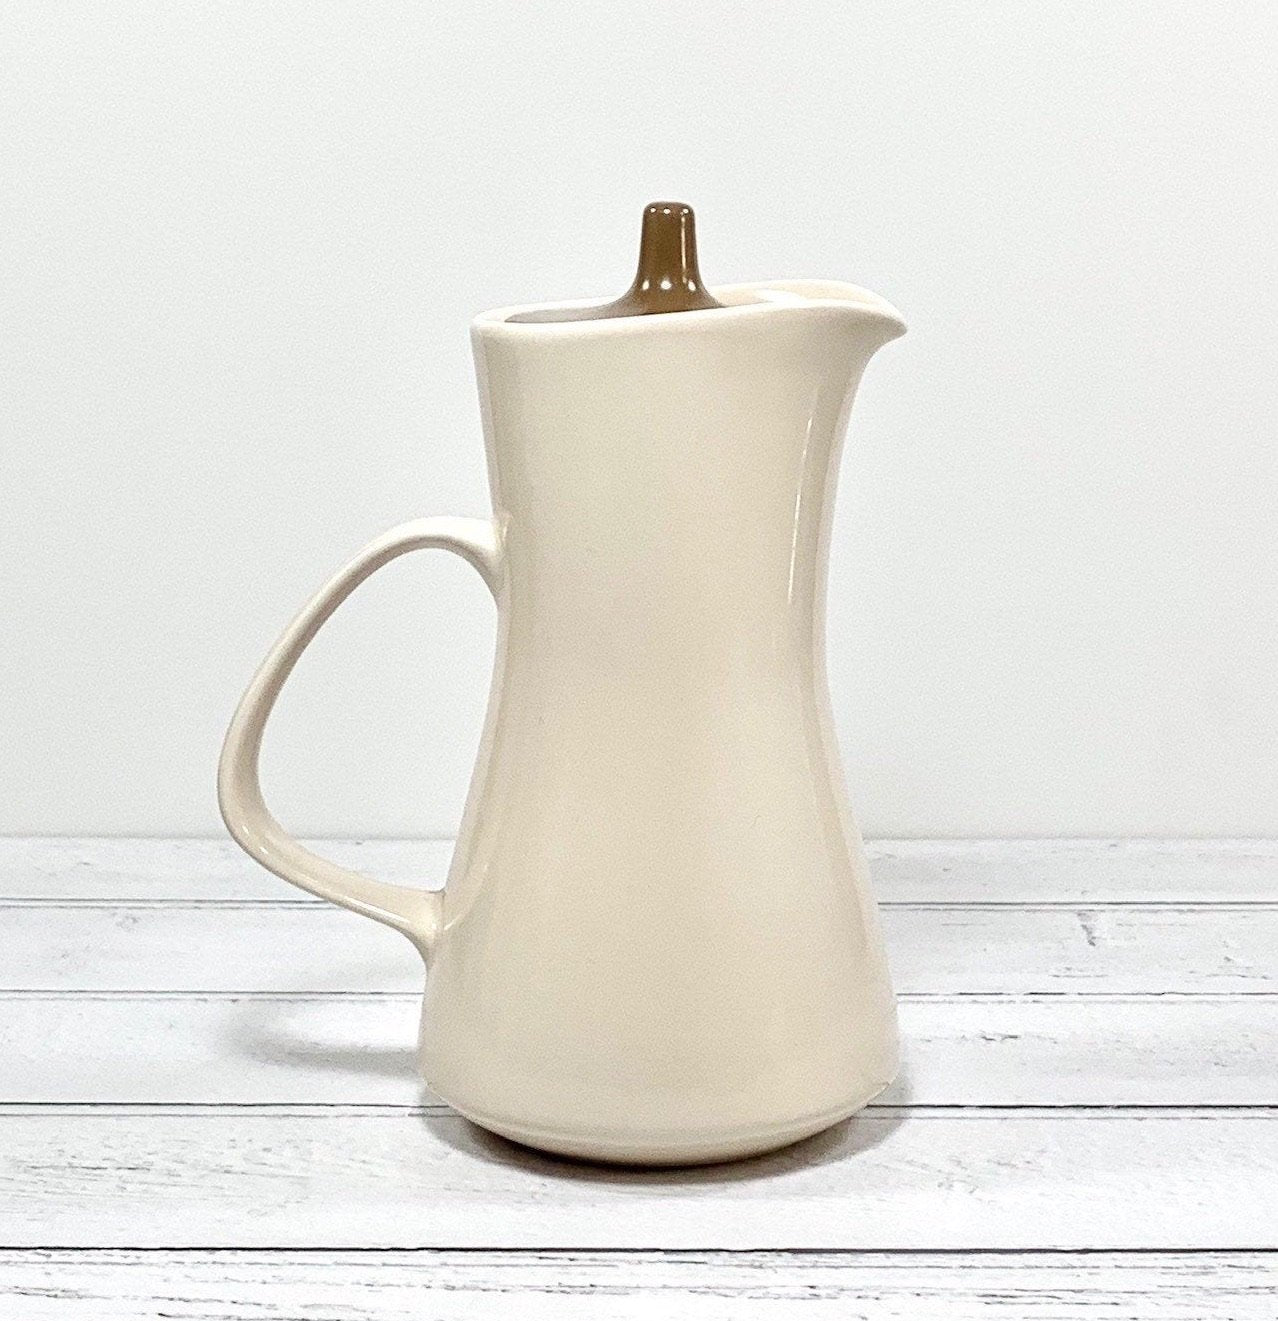 Poole Pottery Small Coffee Pot Water Jug British English 1960s Twintone - Scandiwegians